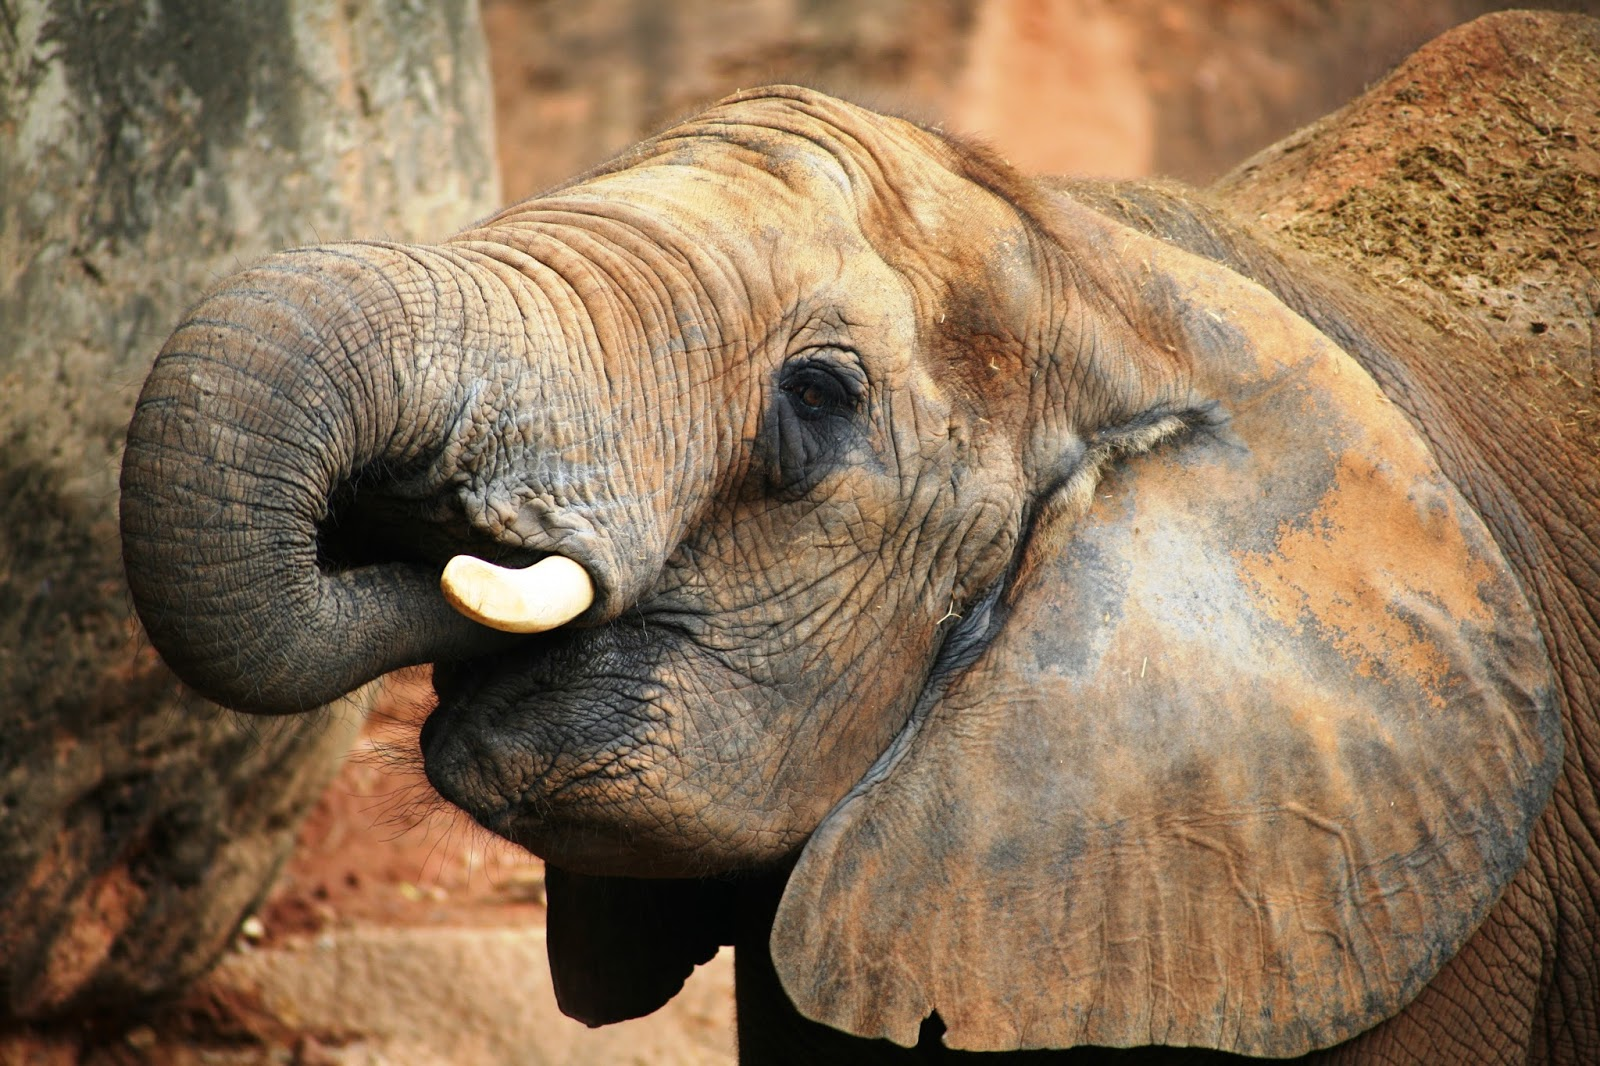 Trunk Length and Other Curious Facts about Elephants 38